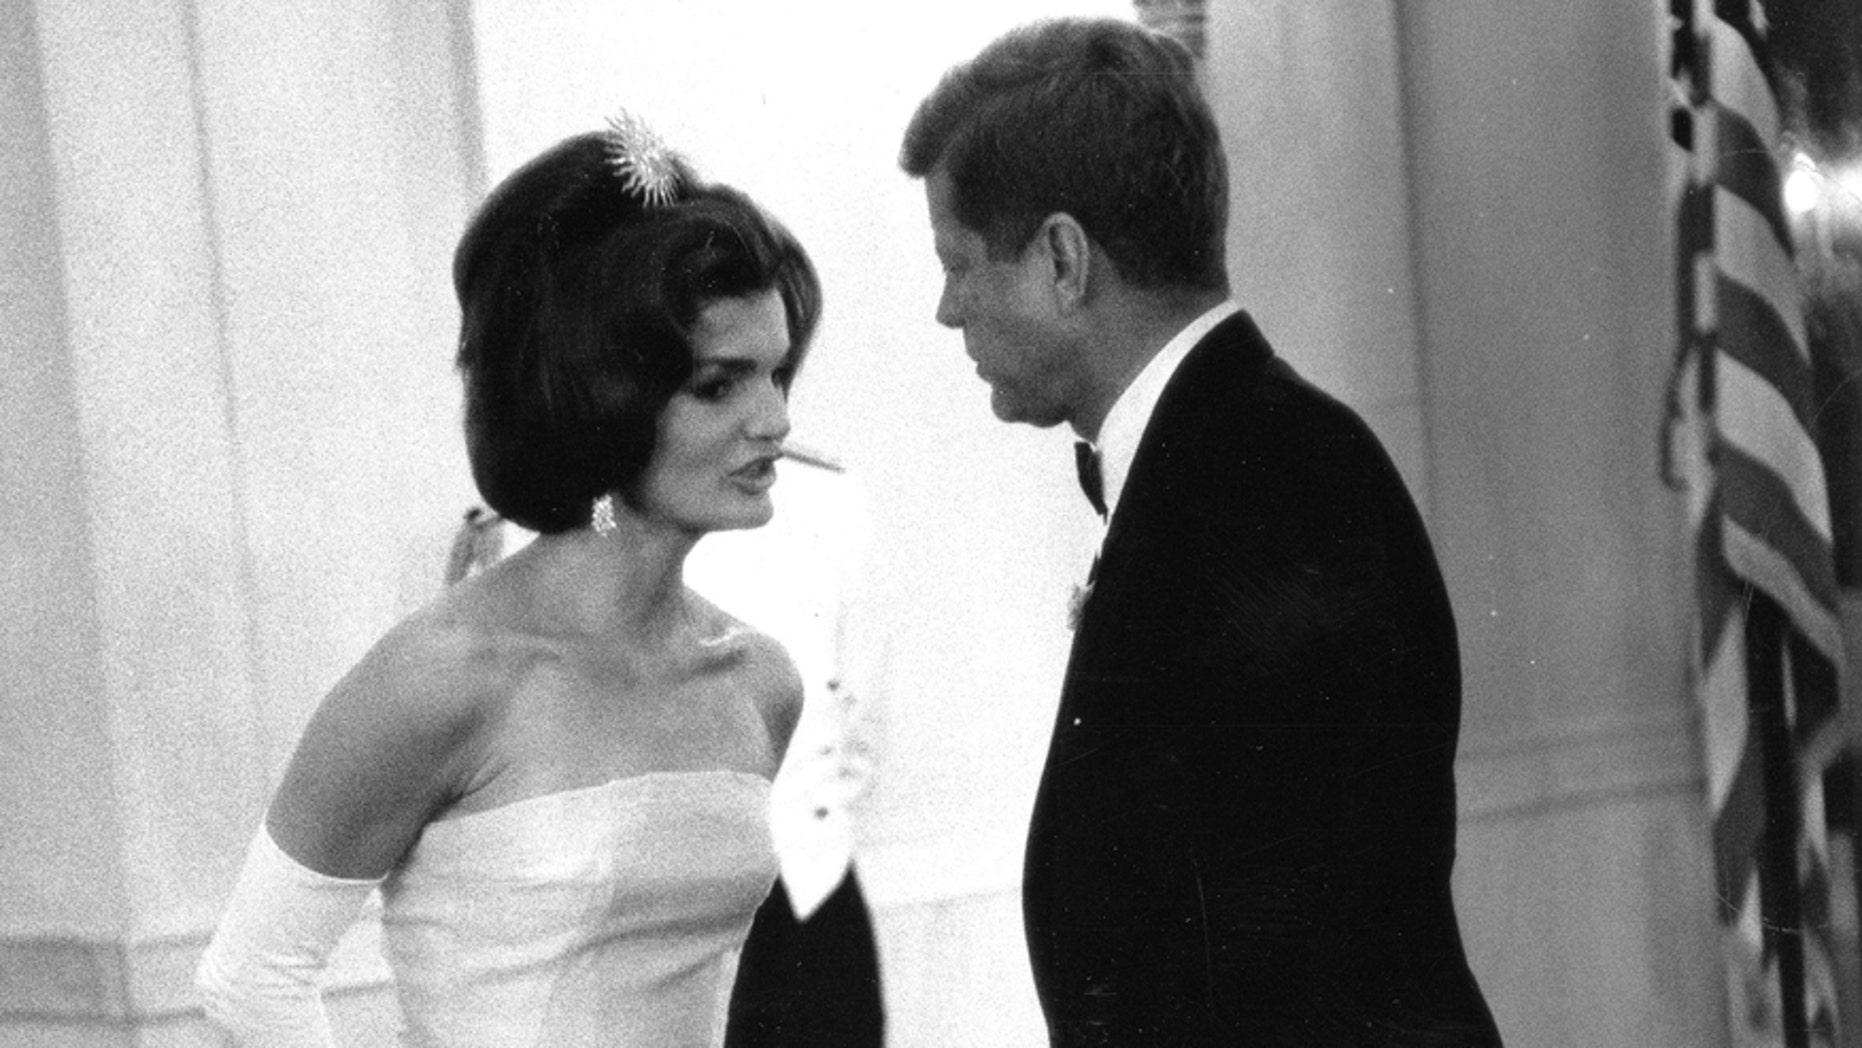 File photo. Former United States President John F. Kennedy and first lady Jackie Kennedy attend a dinner in honor of Andre Malraux, minister of state for cultural affairs of France, in Washington, in this handout image taken on May 11, 1962.